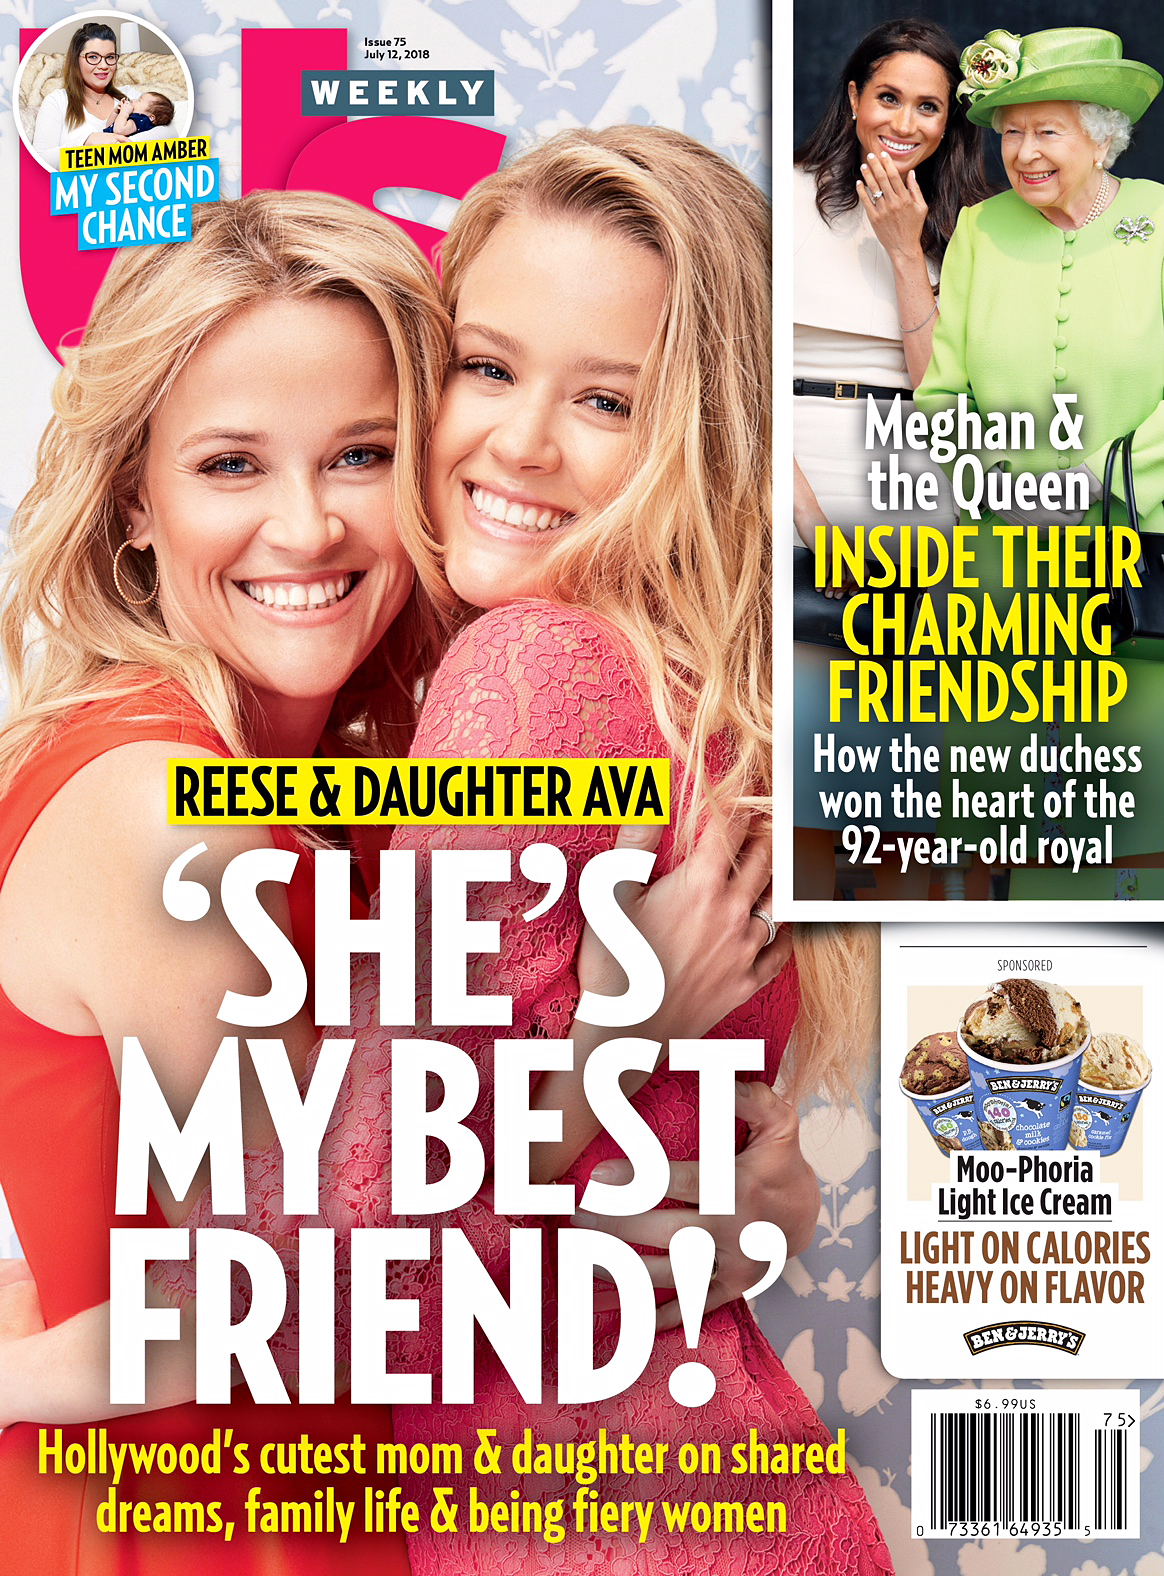 Us Weekly Cover Reese Witherspoon Ava Phillippe